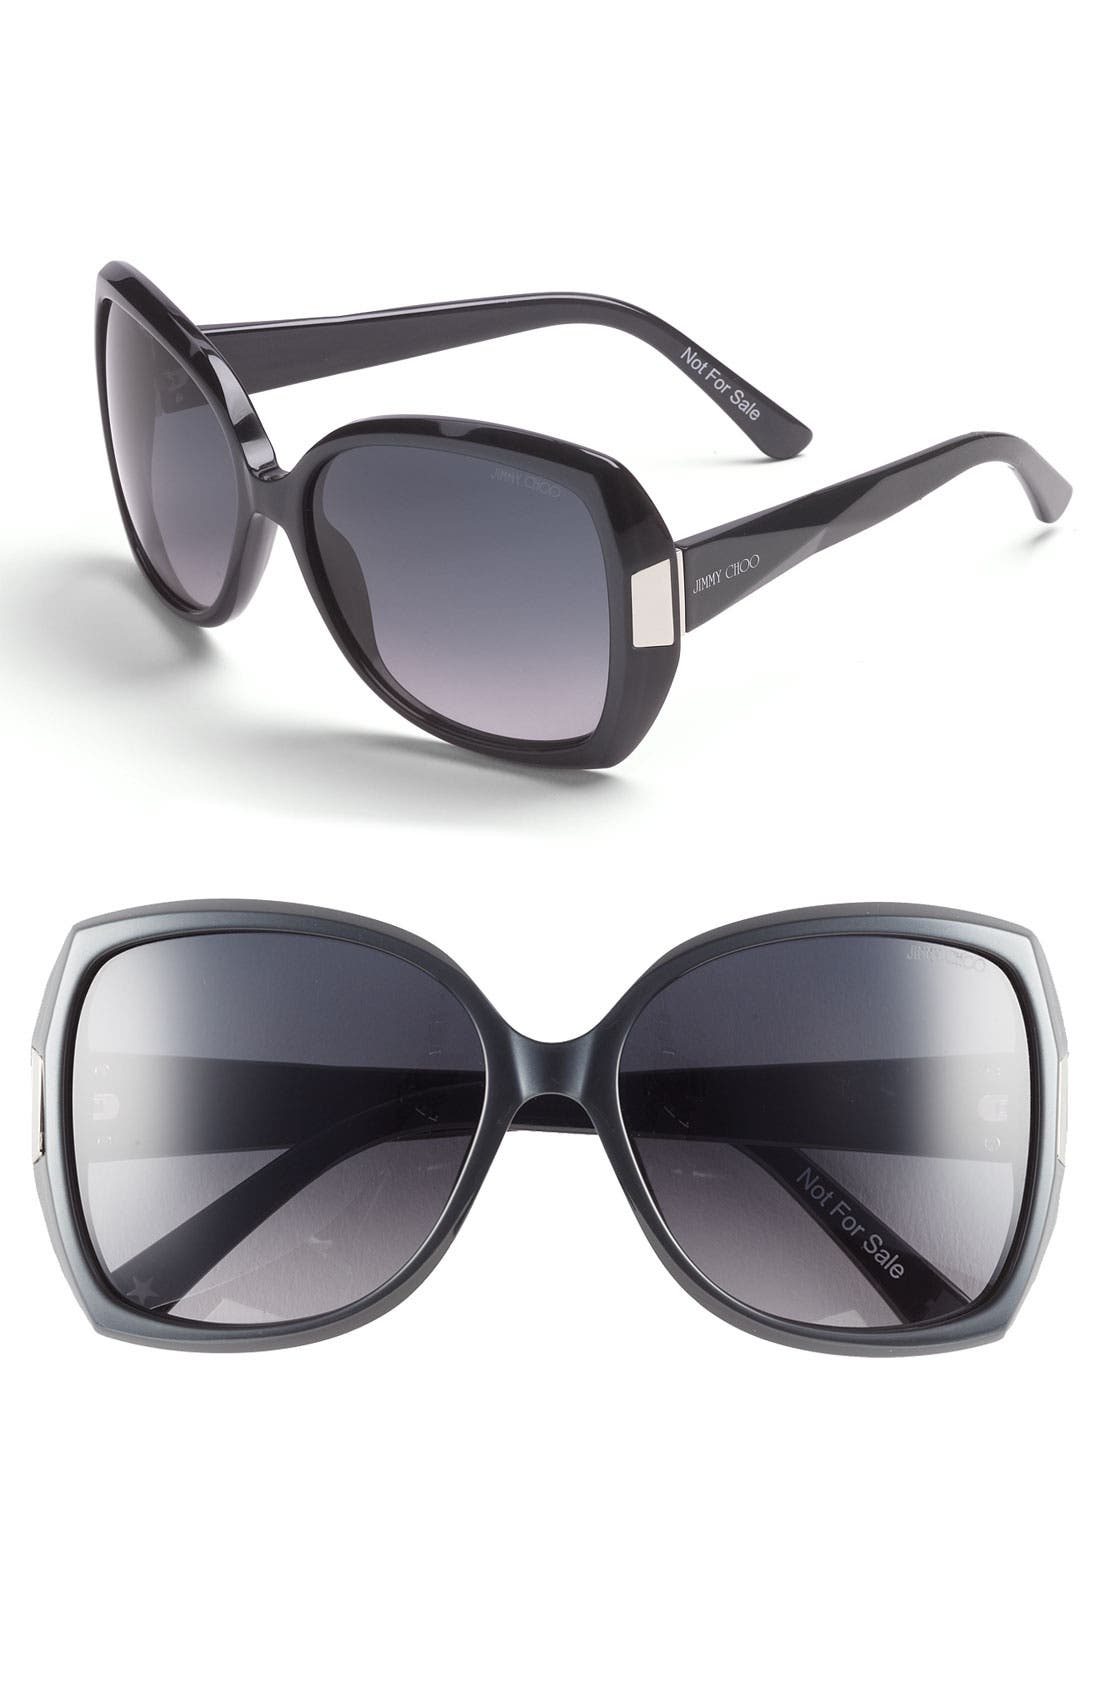 Alternate Image 1 Selected - Jimmy Choo 'Gaby' Oversized Sunglasses